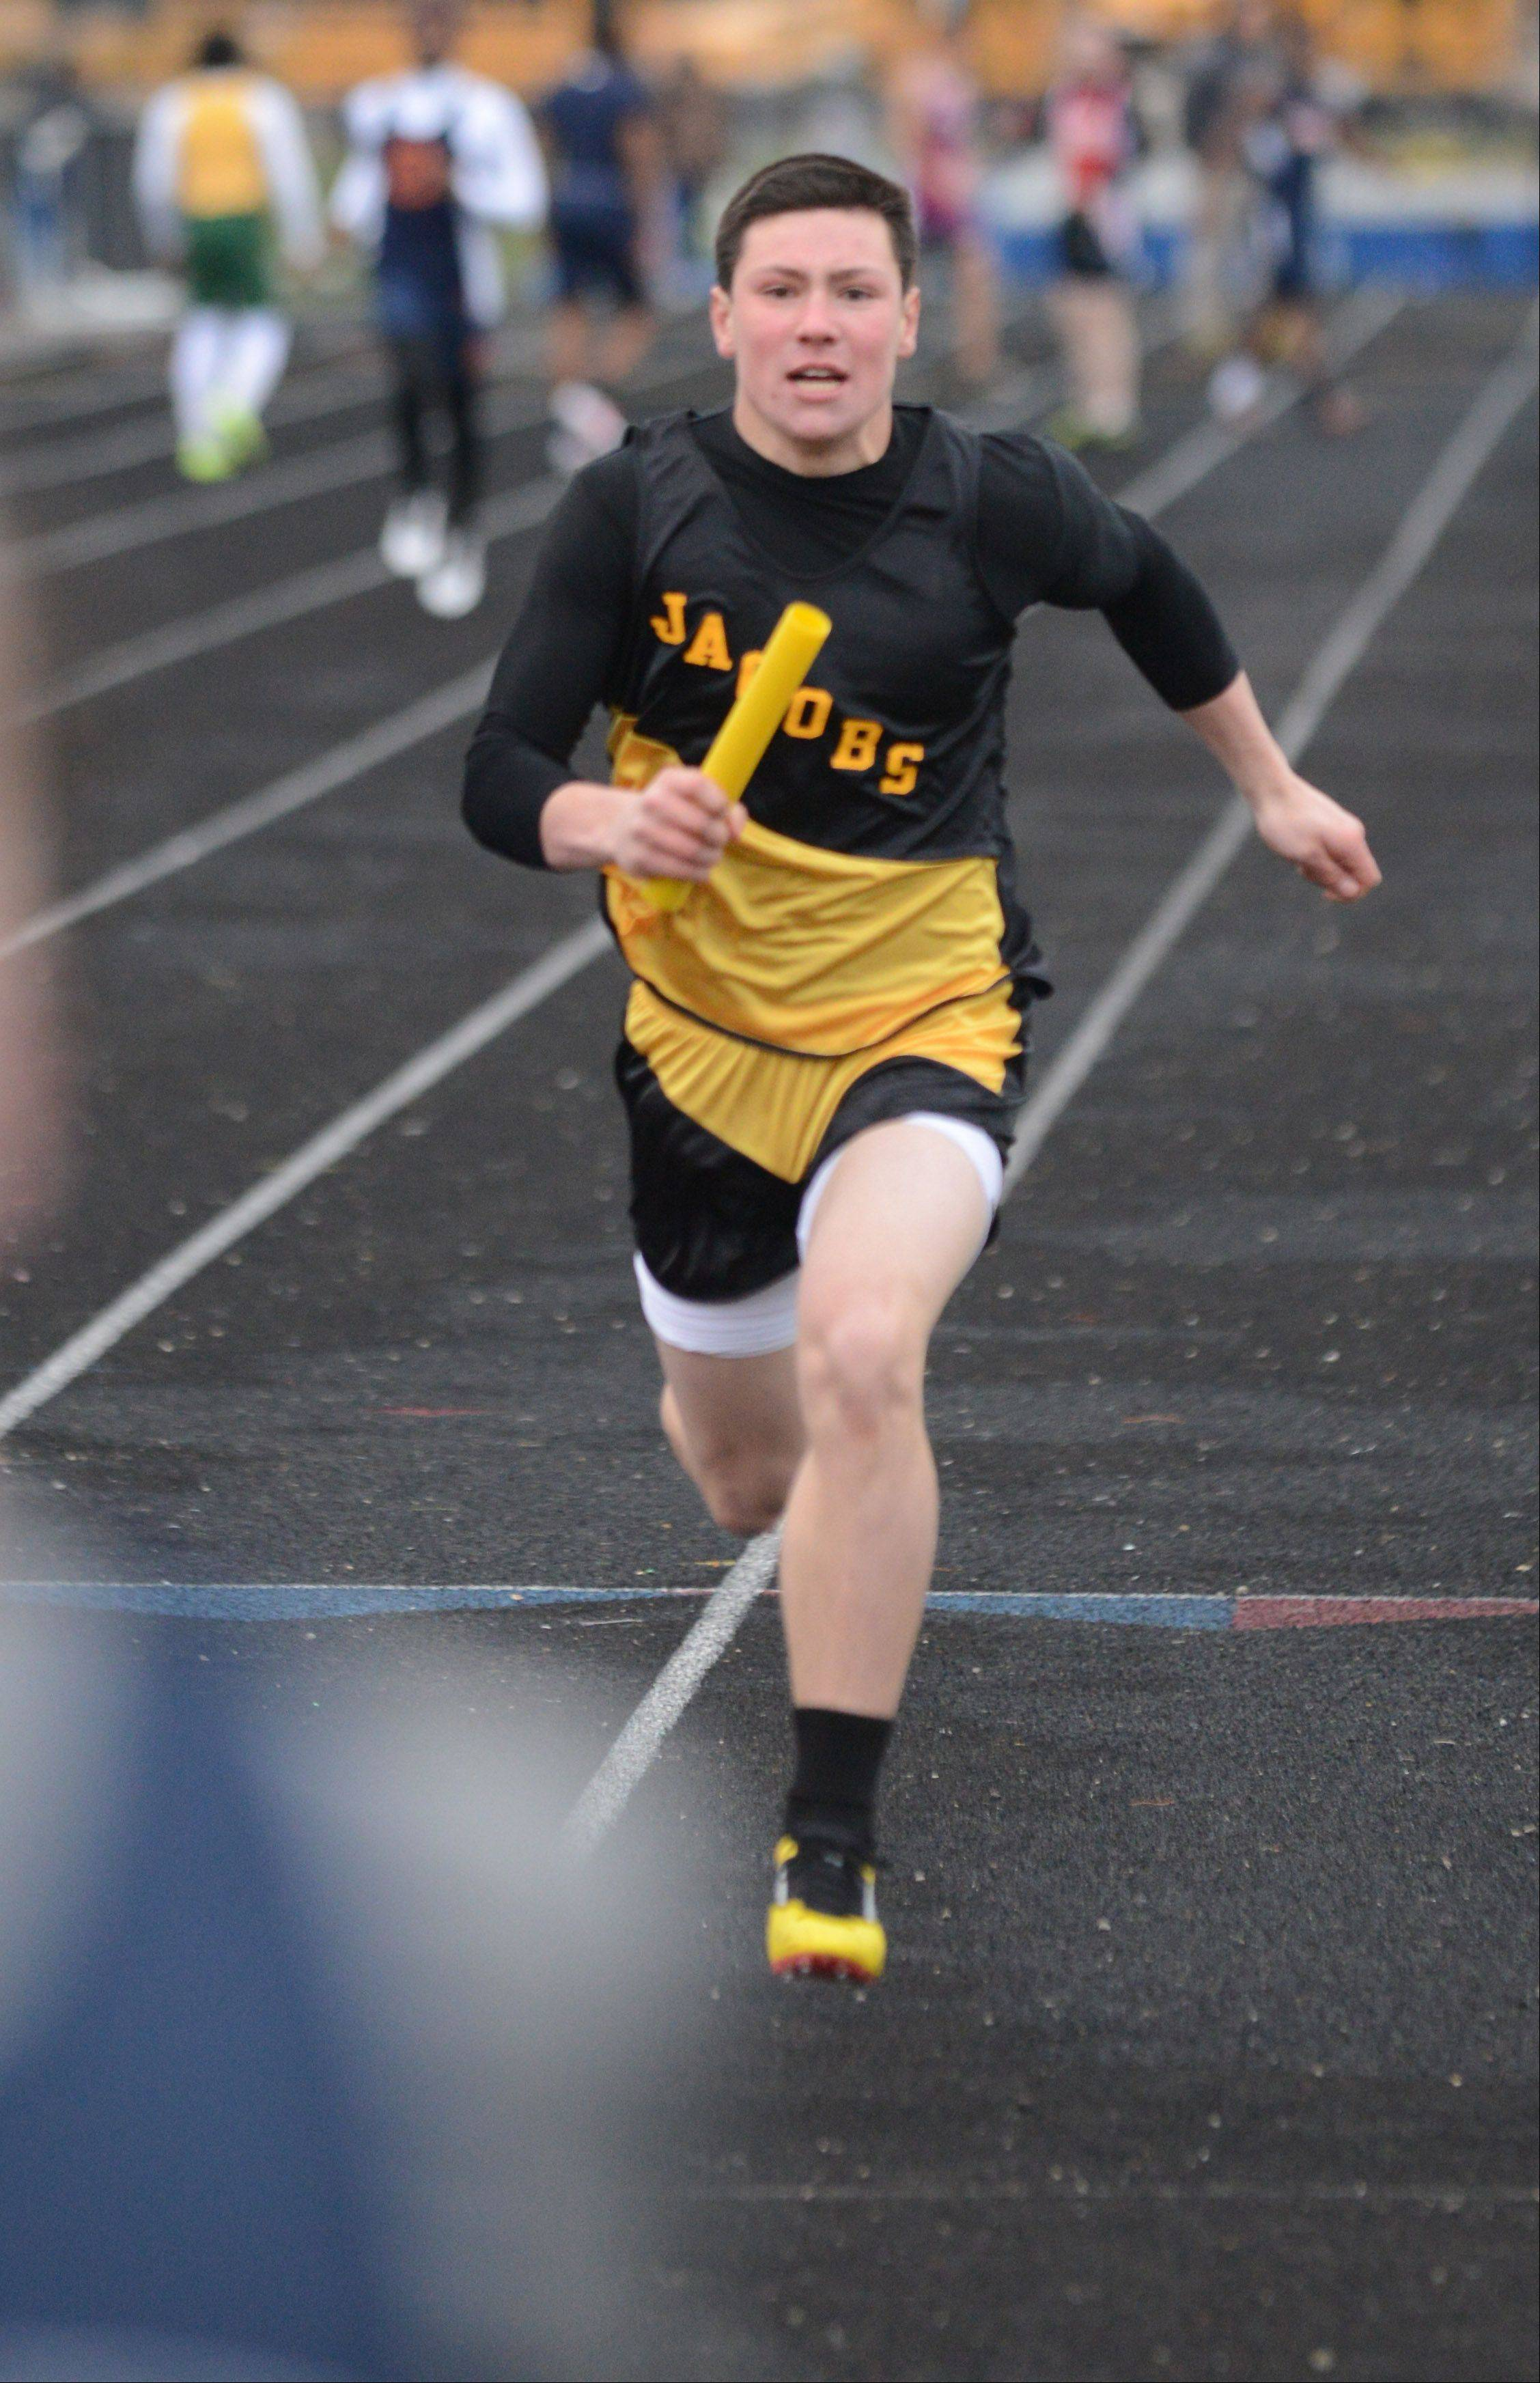 Josh Narvecz of Jacobs makes his way to the line during the Gus Scott track meet at Naperville North on Friday. He was in the 4x800 relay.